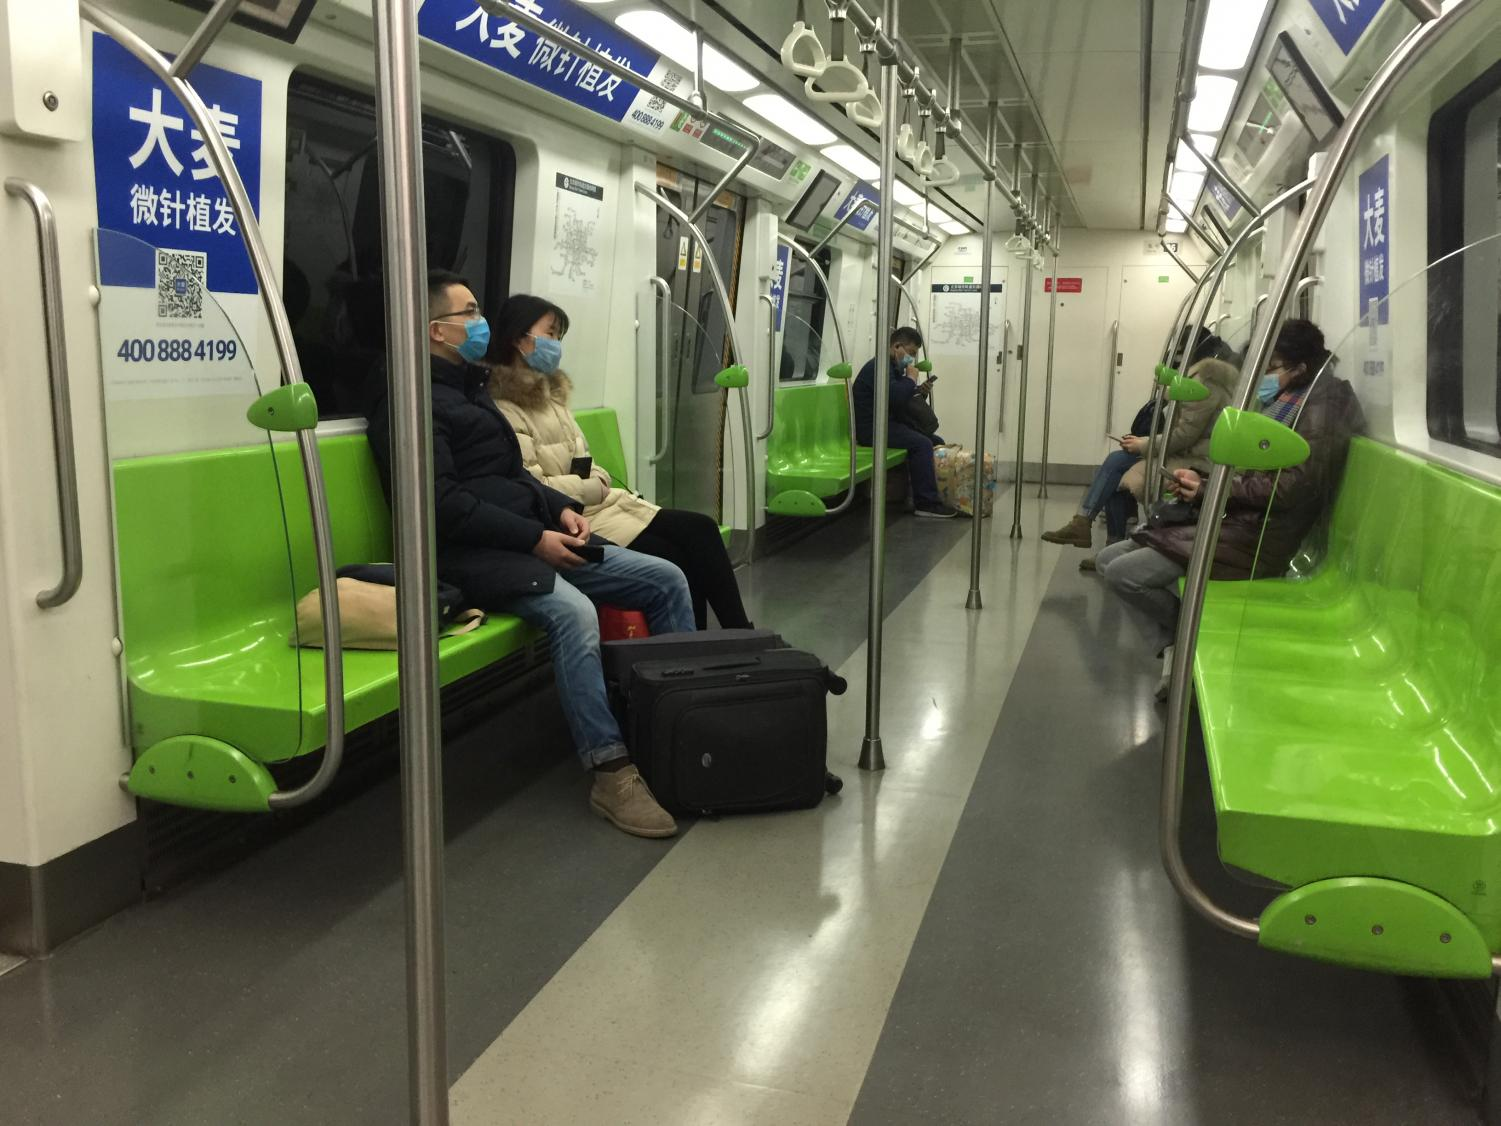 Passengers on an unusually empty subway in Beijing wear masks to protect themselves from the coronavirus.